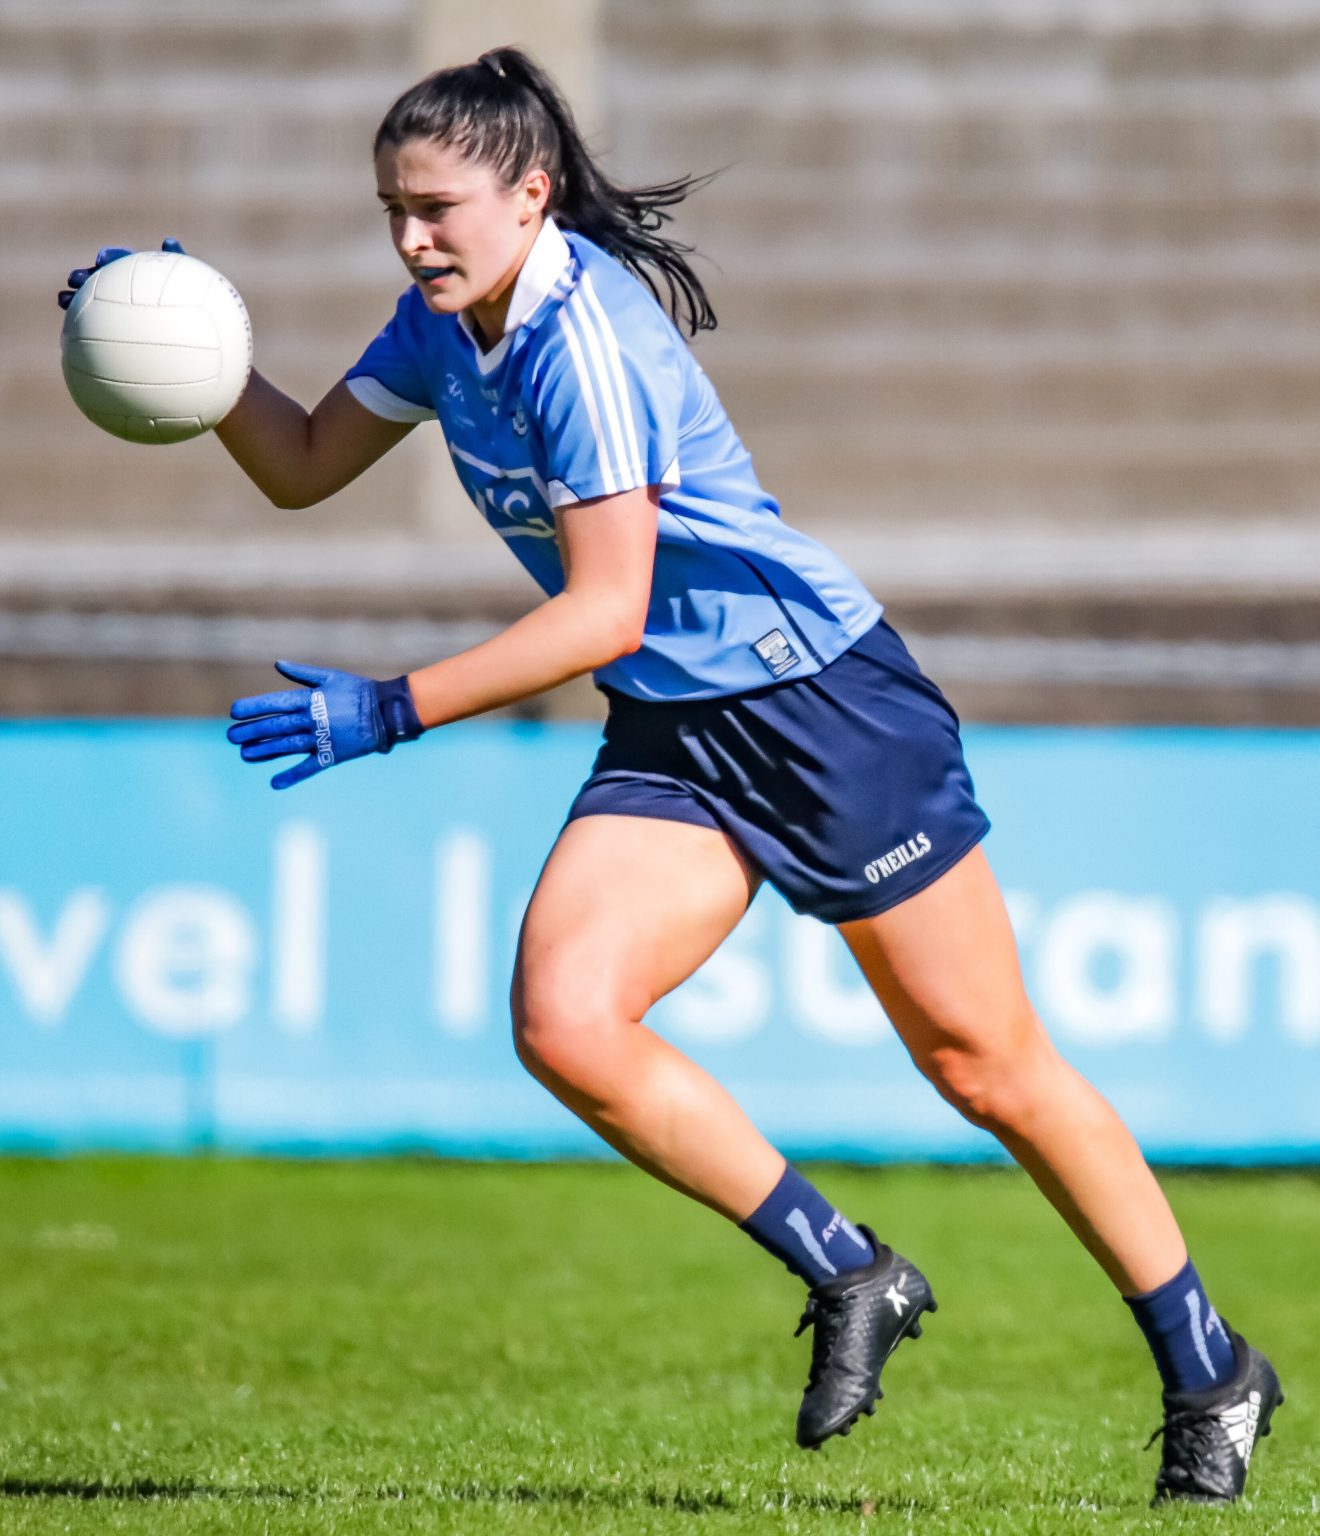 Dublin LGFA Player Olwen Carey in a sky blue jersey running with a white ball